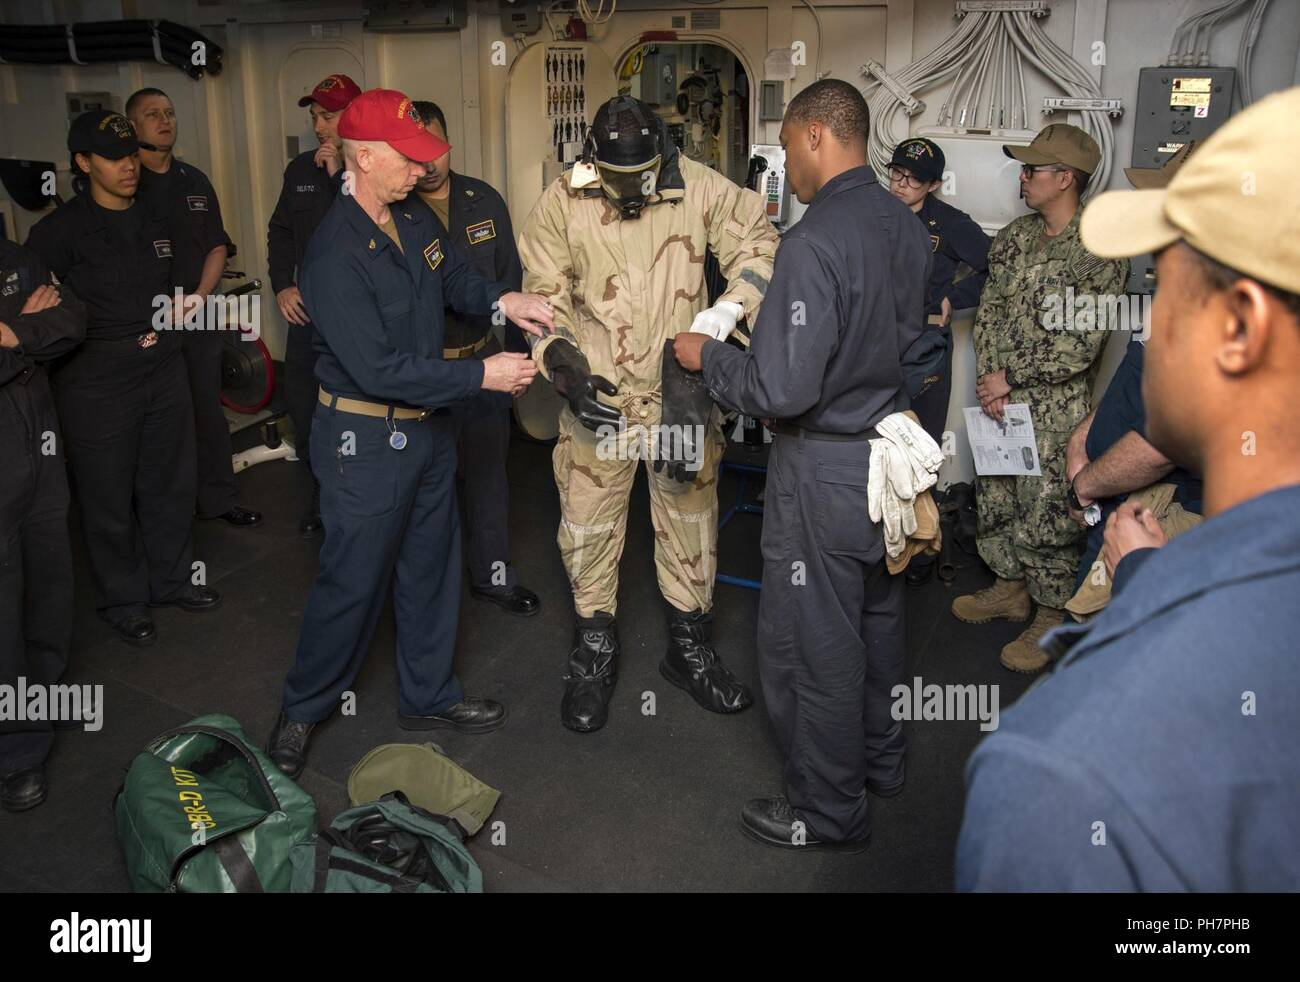 SAN DIEGO (June 26, 2018) Senior Chief Culinary Specialist Anthony Hooper, left, and Ship's Serviceman Seaman Jaylan Eady, right, from Whiteville, N.C., help Logistics Specialist 2nd Class Donald Eugene, from Miami, don a chemical, biological and radiological (CBR) overgarment during a CBR training exercise aboard the amphibious assault ship USS Bonhomme Richard (LHD 6). Bonhomme Richard is currently in its homeport of San Diego, preparing for an upcoming scheduled deployment. - Stock Image